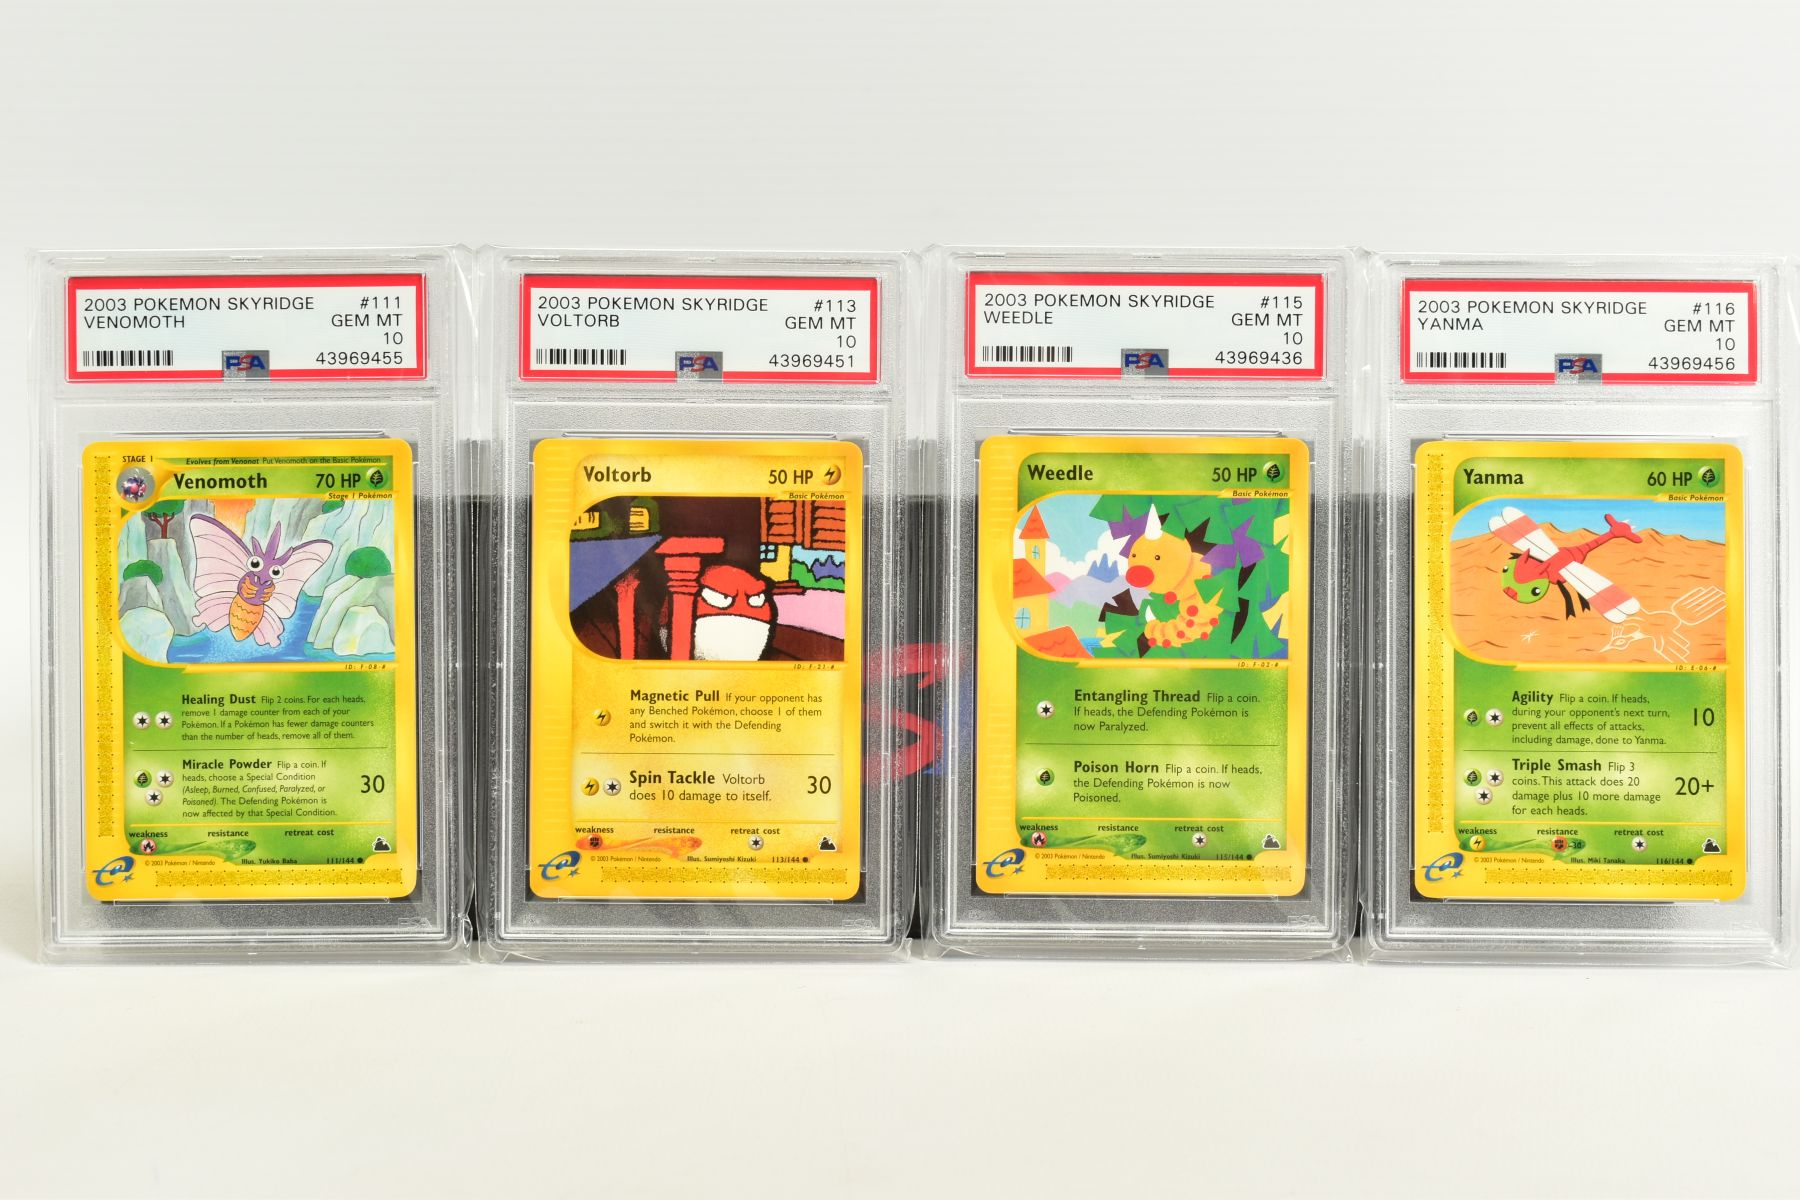 A QUANTITY OF PSA GRADED POKEMON SKYRIDGE SET CARDS, all are graded GEM MINT 10 and are sealed in - Image 6 of 9